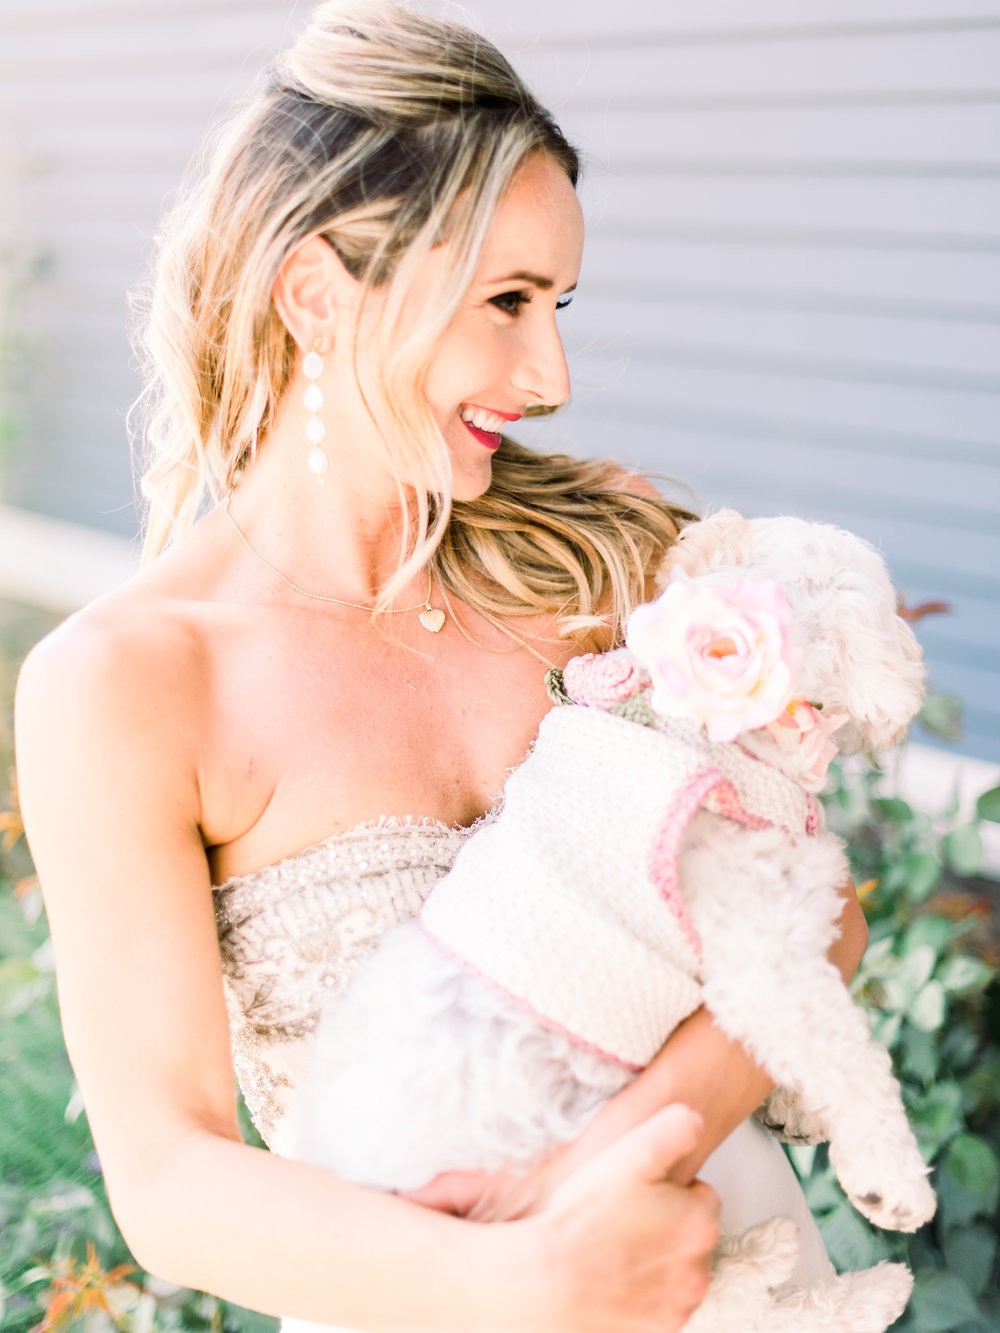 happy-bride-holding-her-puppy.jpg